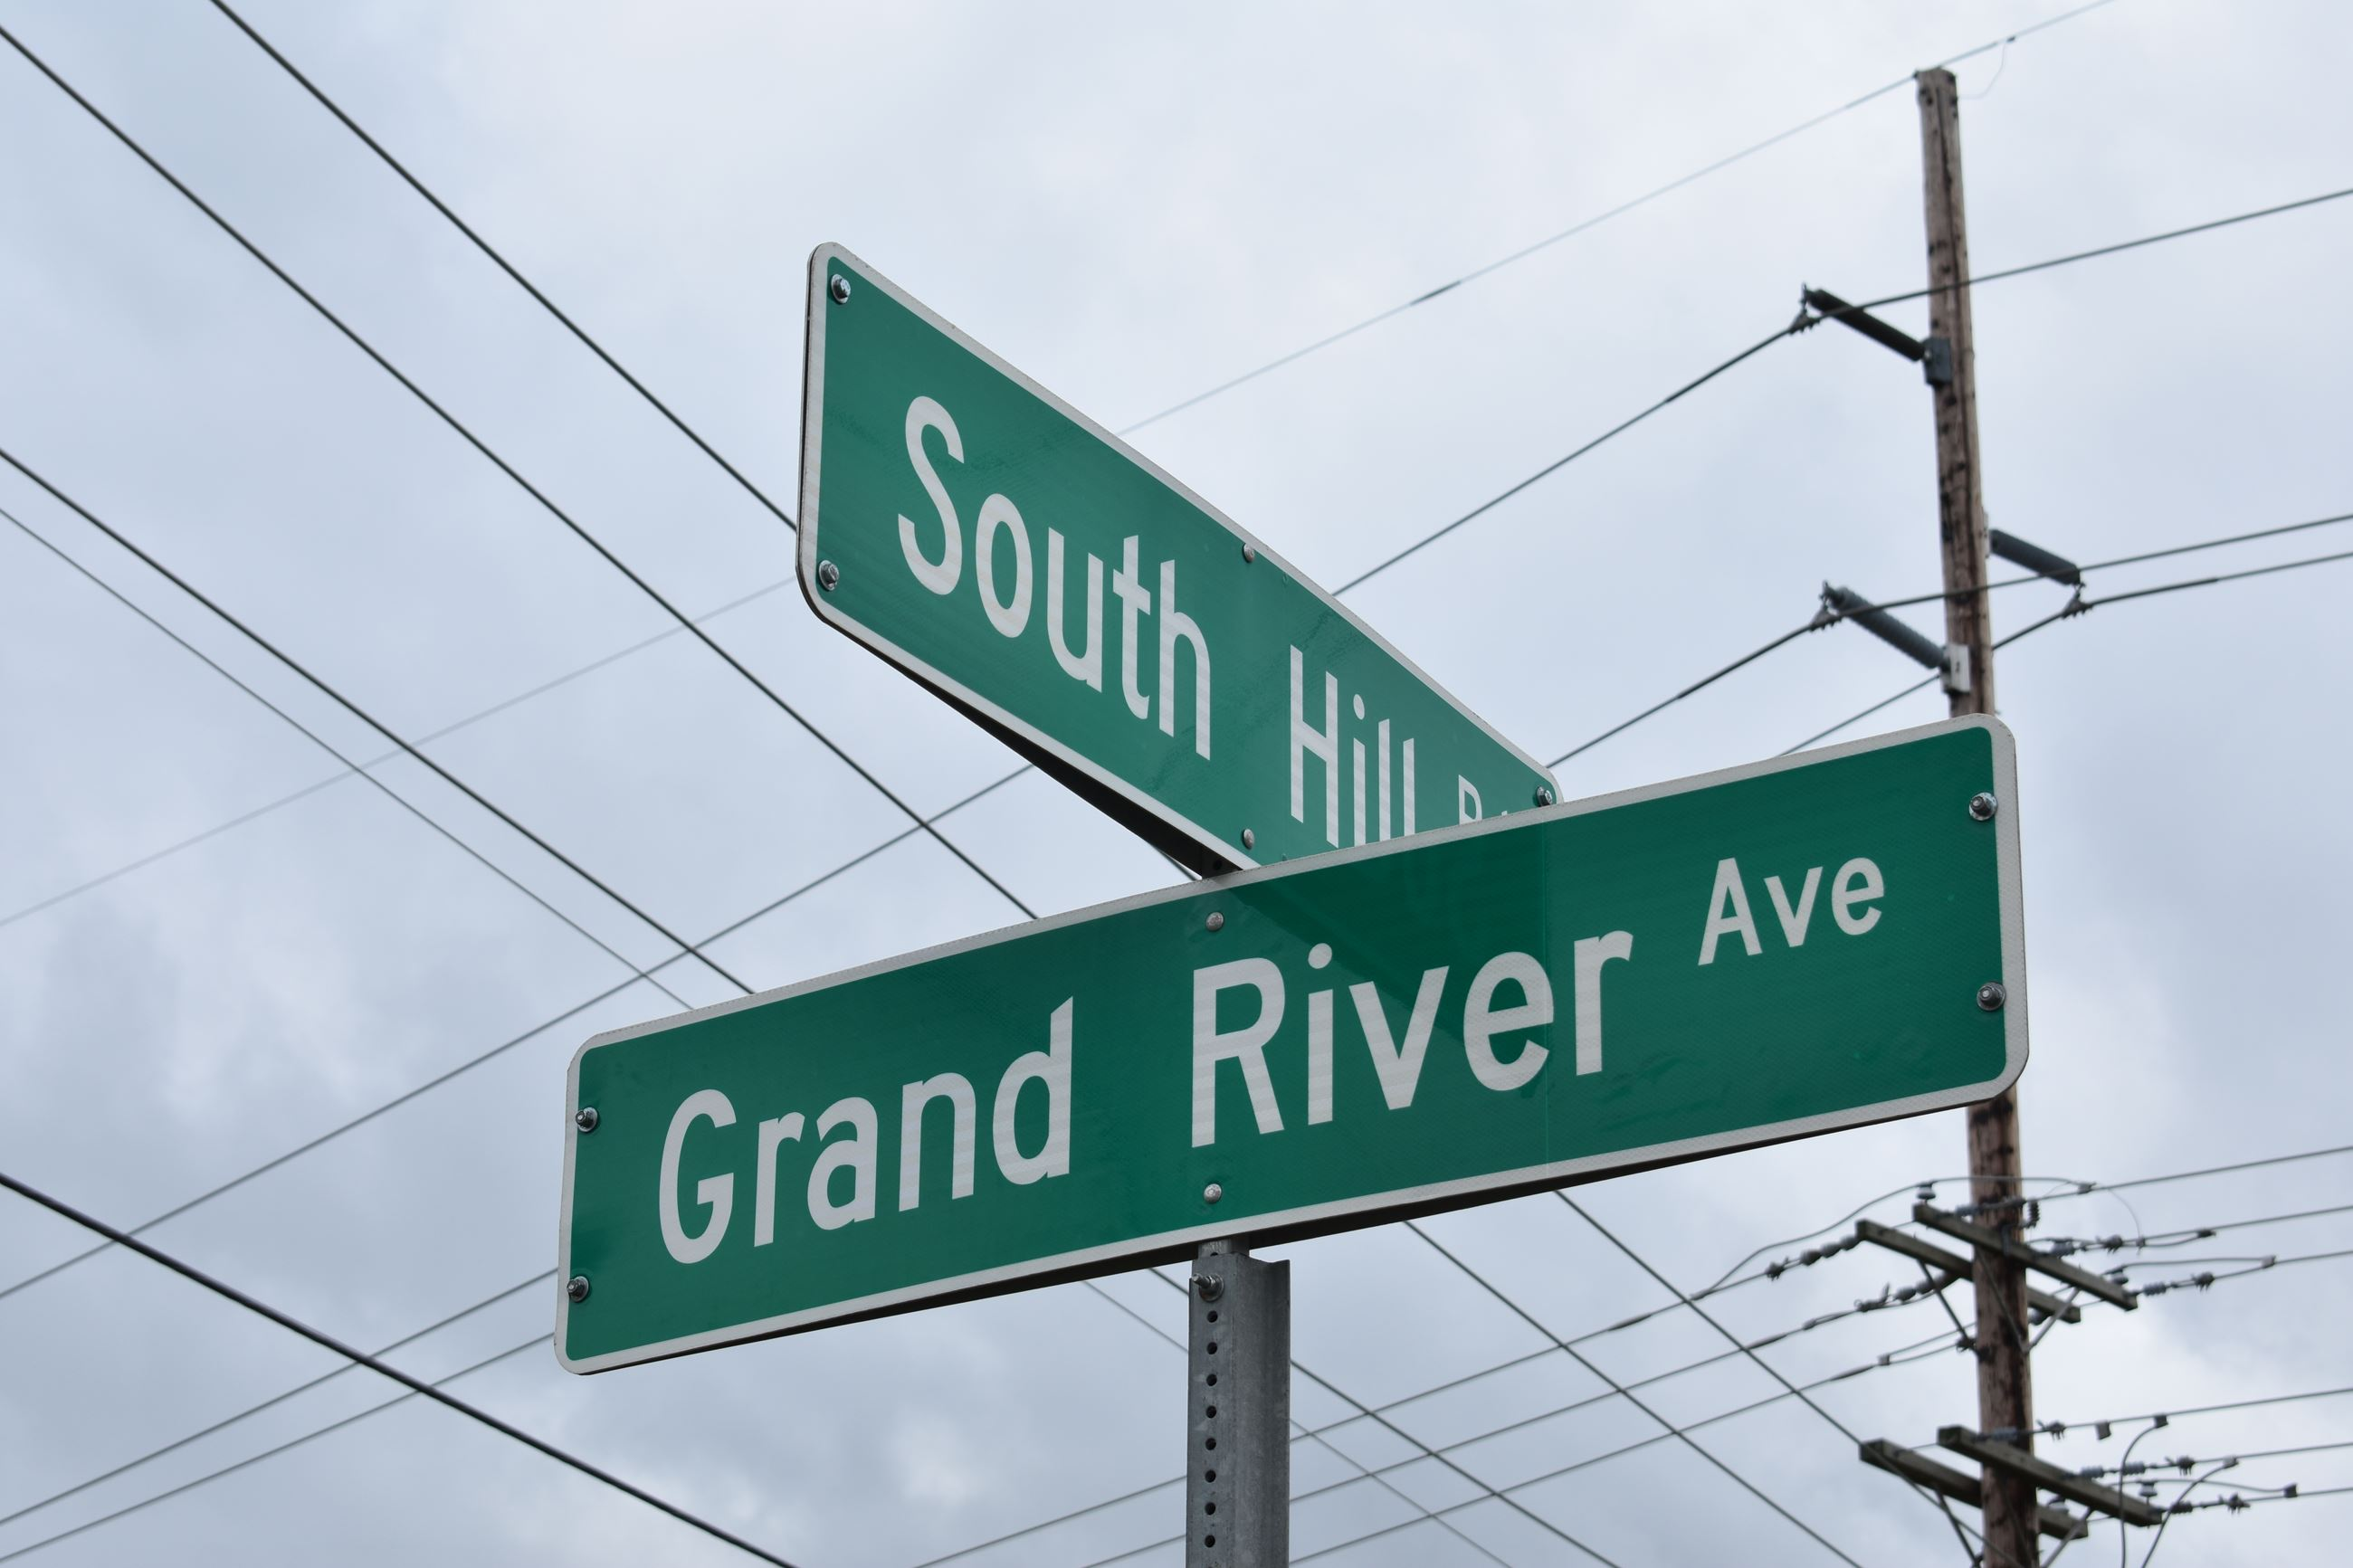 Grand River and South Hill sign